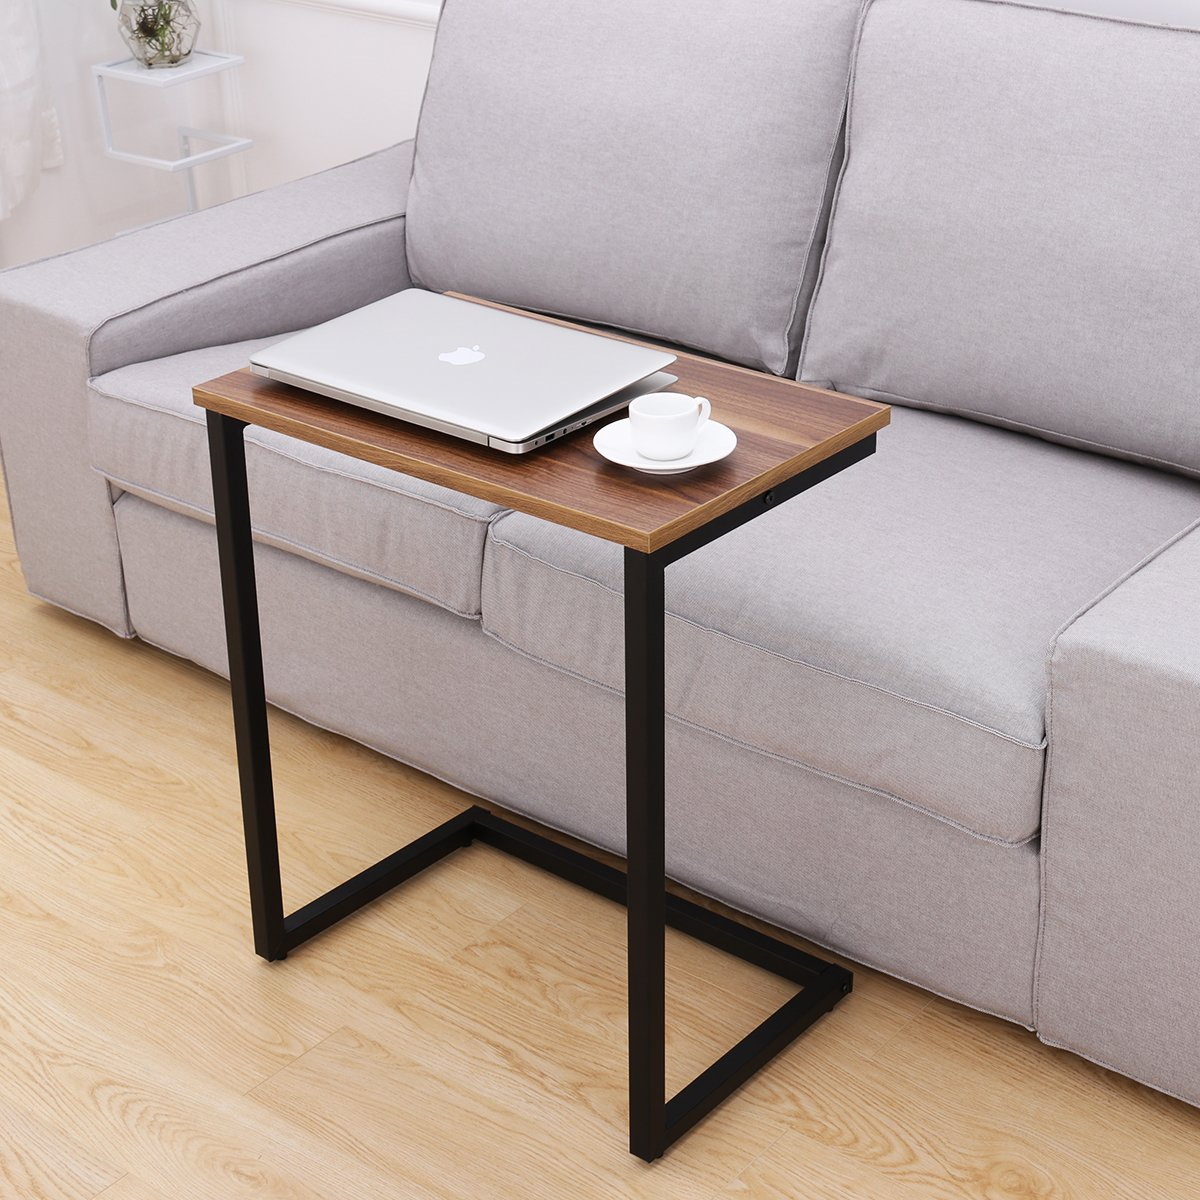 HOMEMAXS Sofa Side End Table C Table Multiple Stand 26-Inch for Small Space